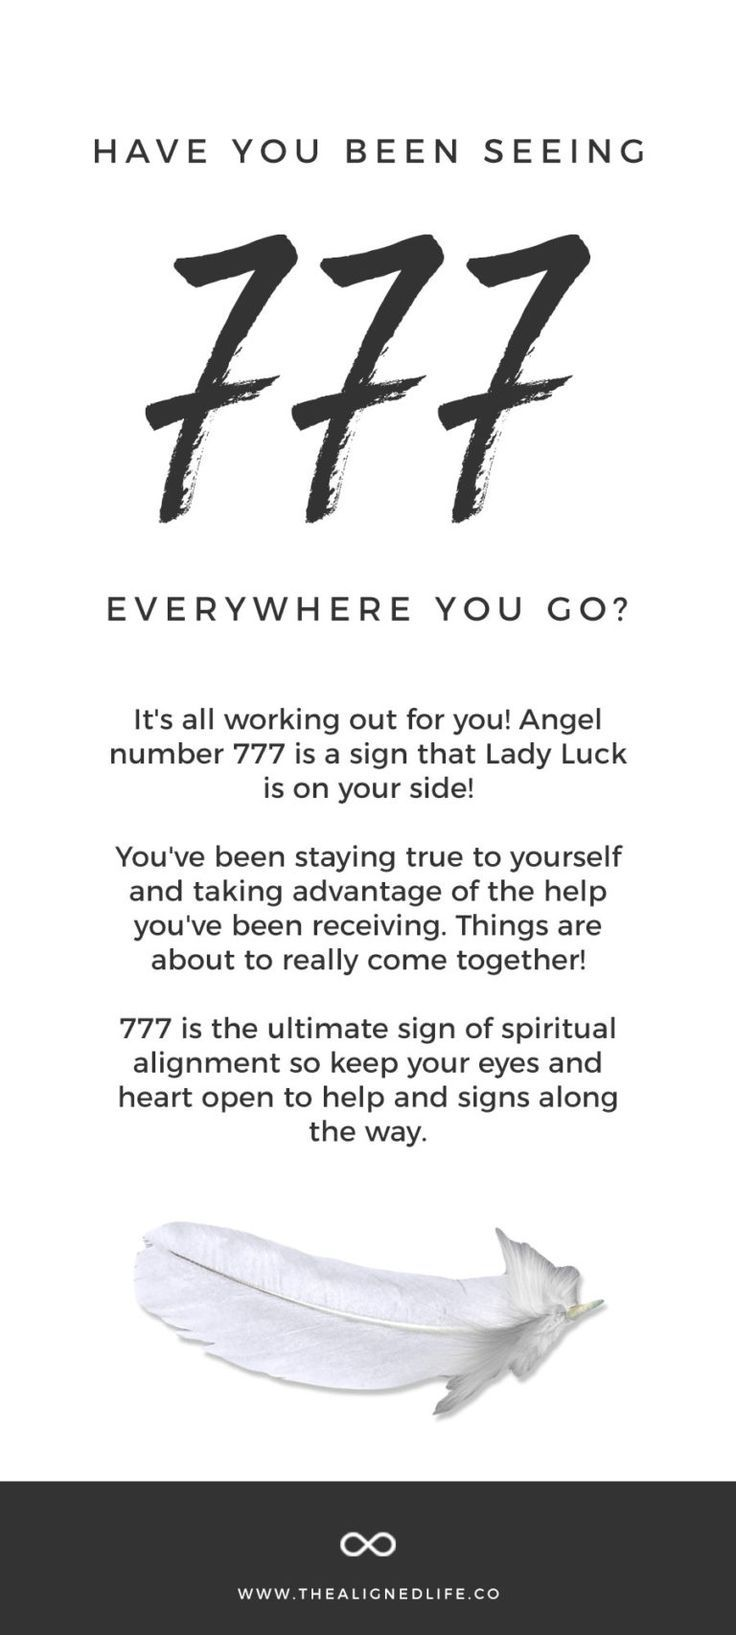 How To Manifest With Angel Numbers: What Do They Mean? - The Aligned Life |  Angel number 777, Angel numbers, Angel number meanings